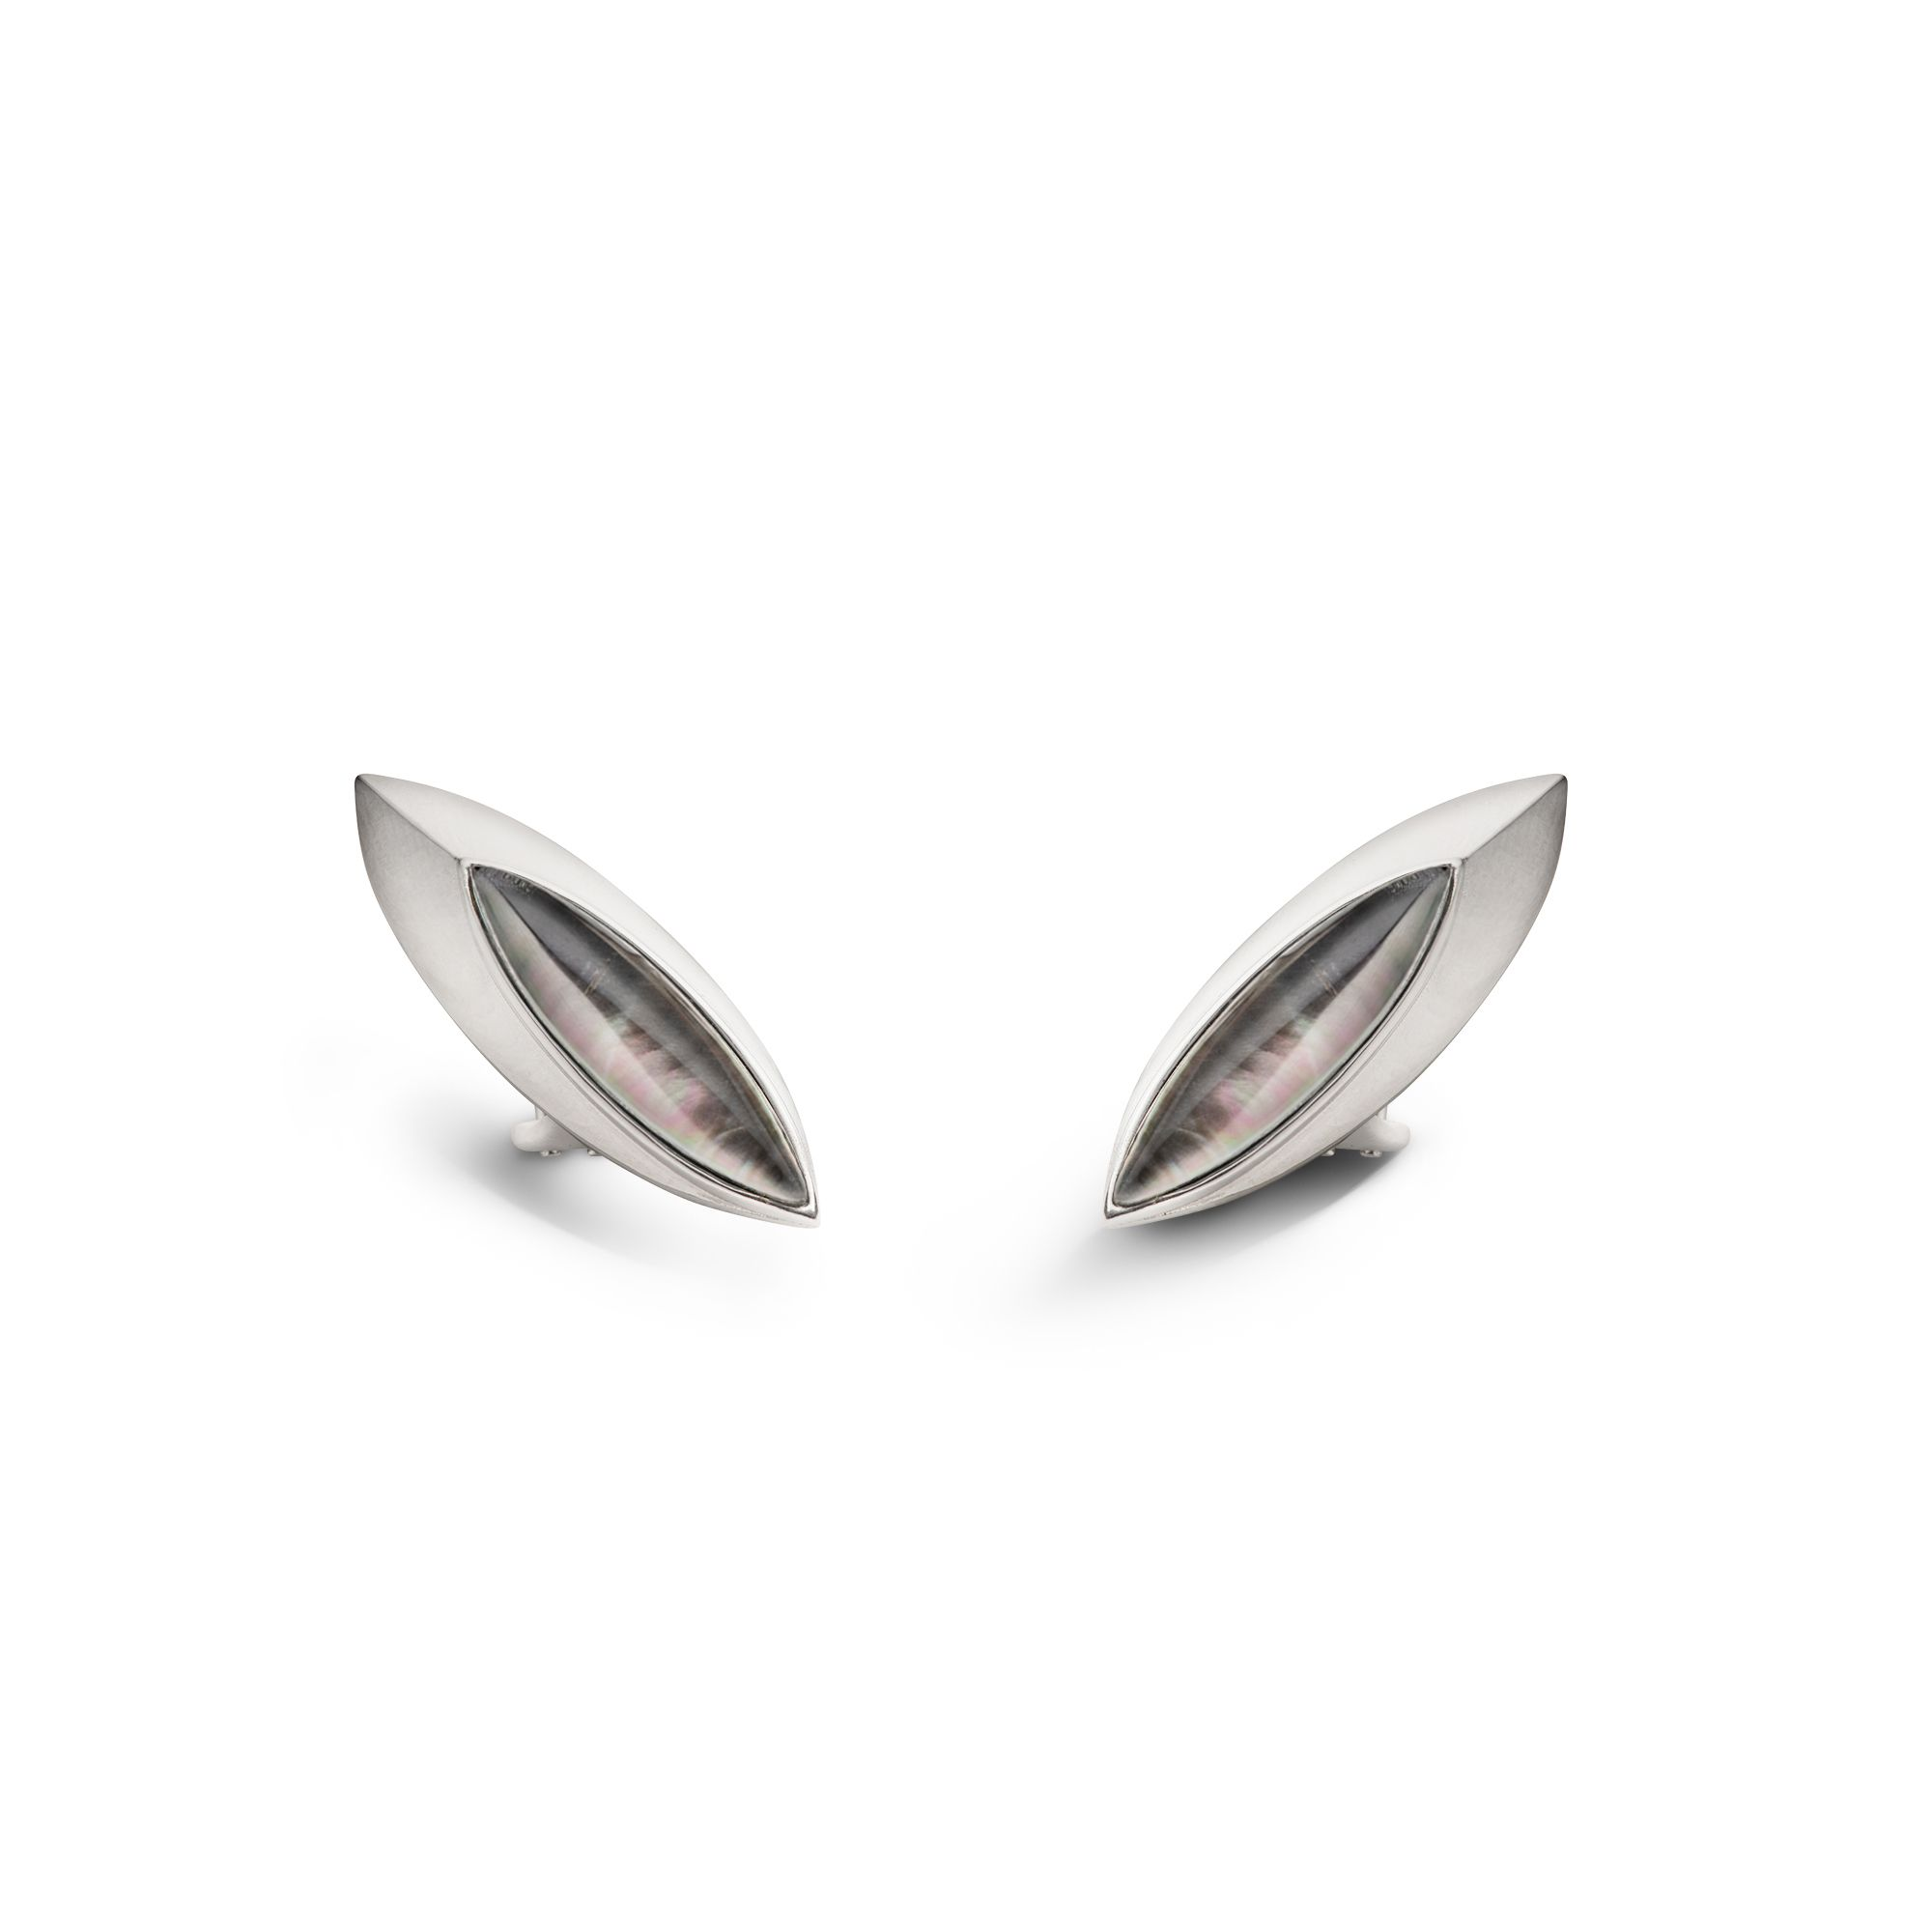 Grey 'Navetta' shields Silver earrings with grey mother-of-pearl